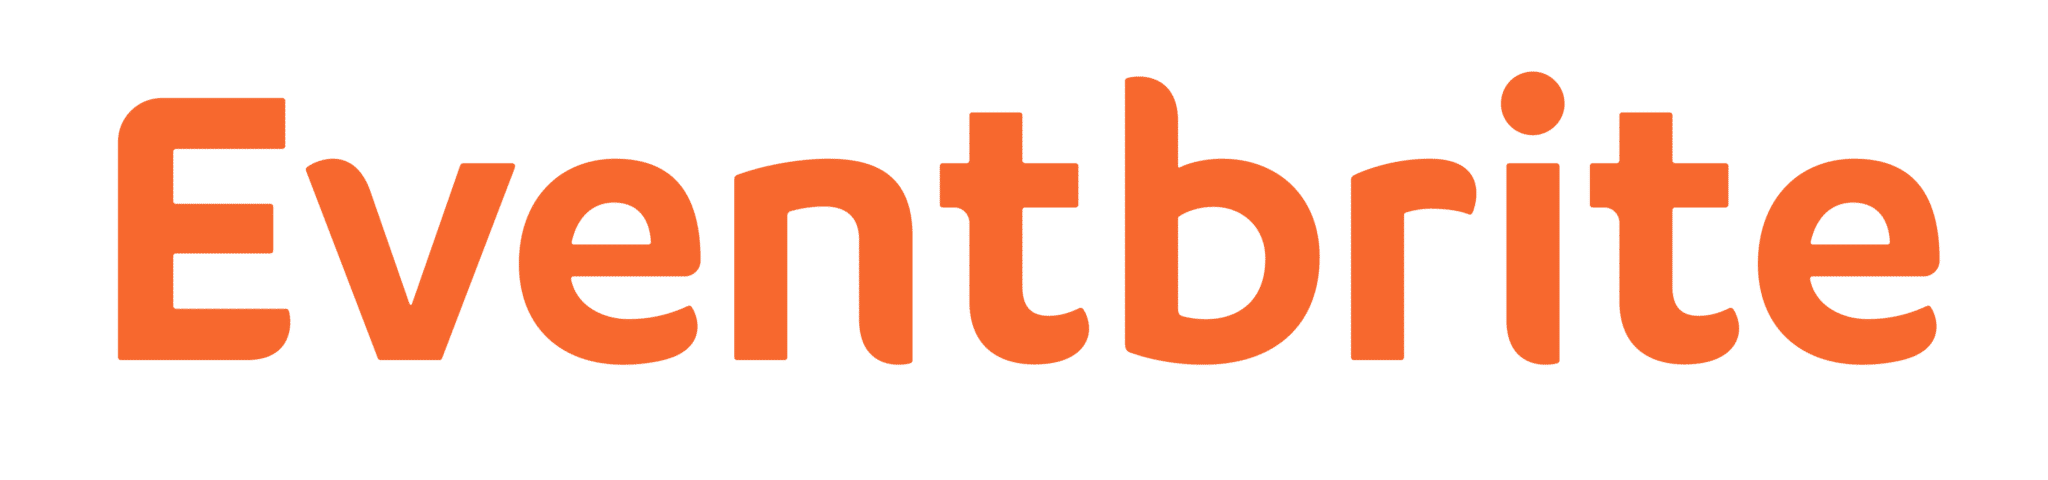 Eventbrite_wordmark_orange.png